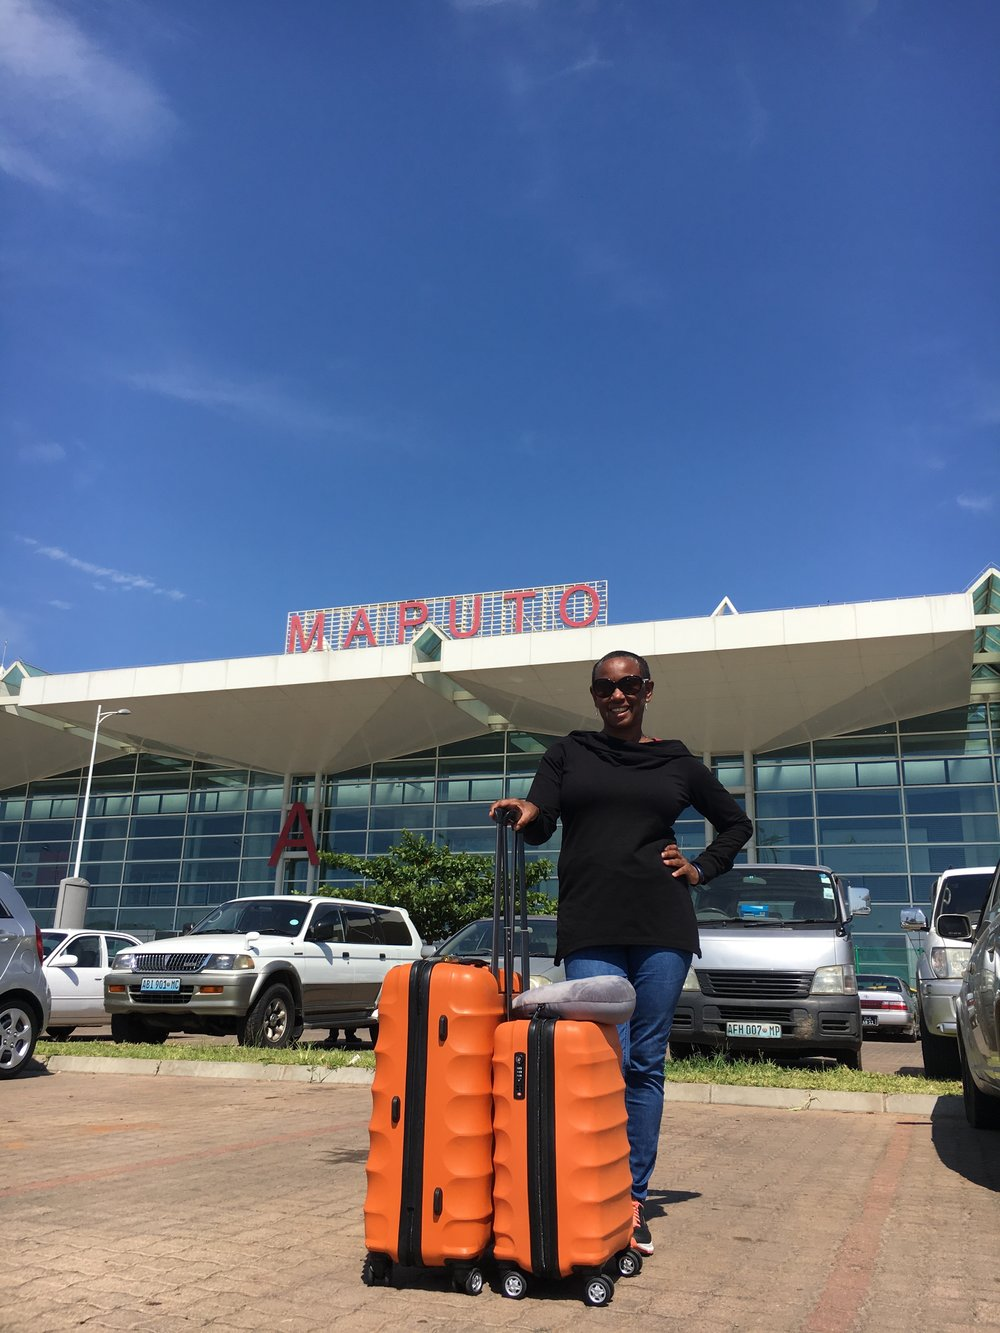 Arriving in Mozambique